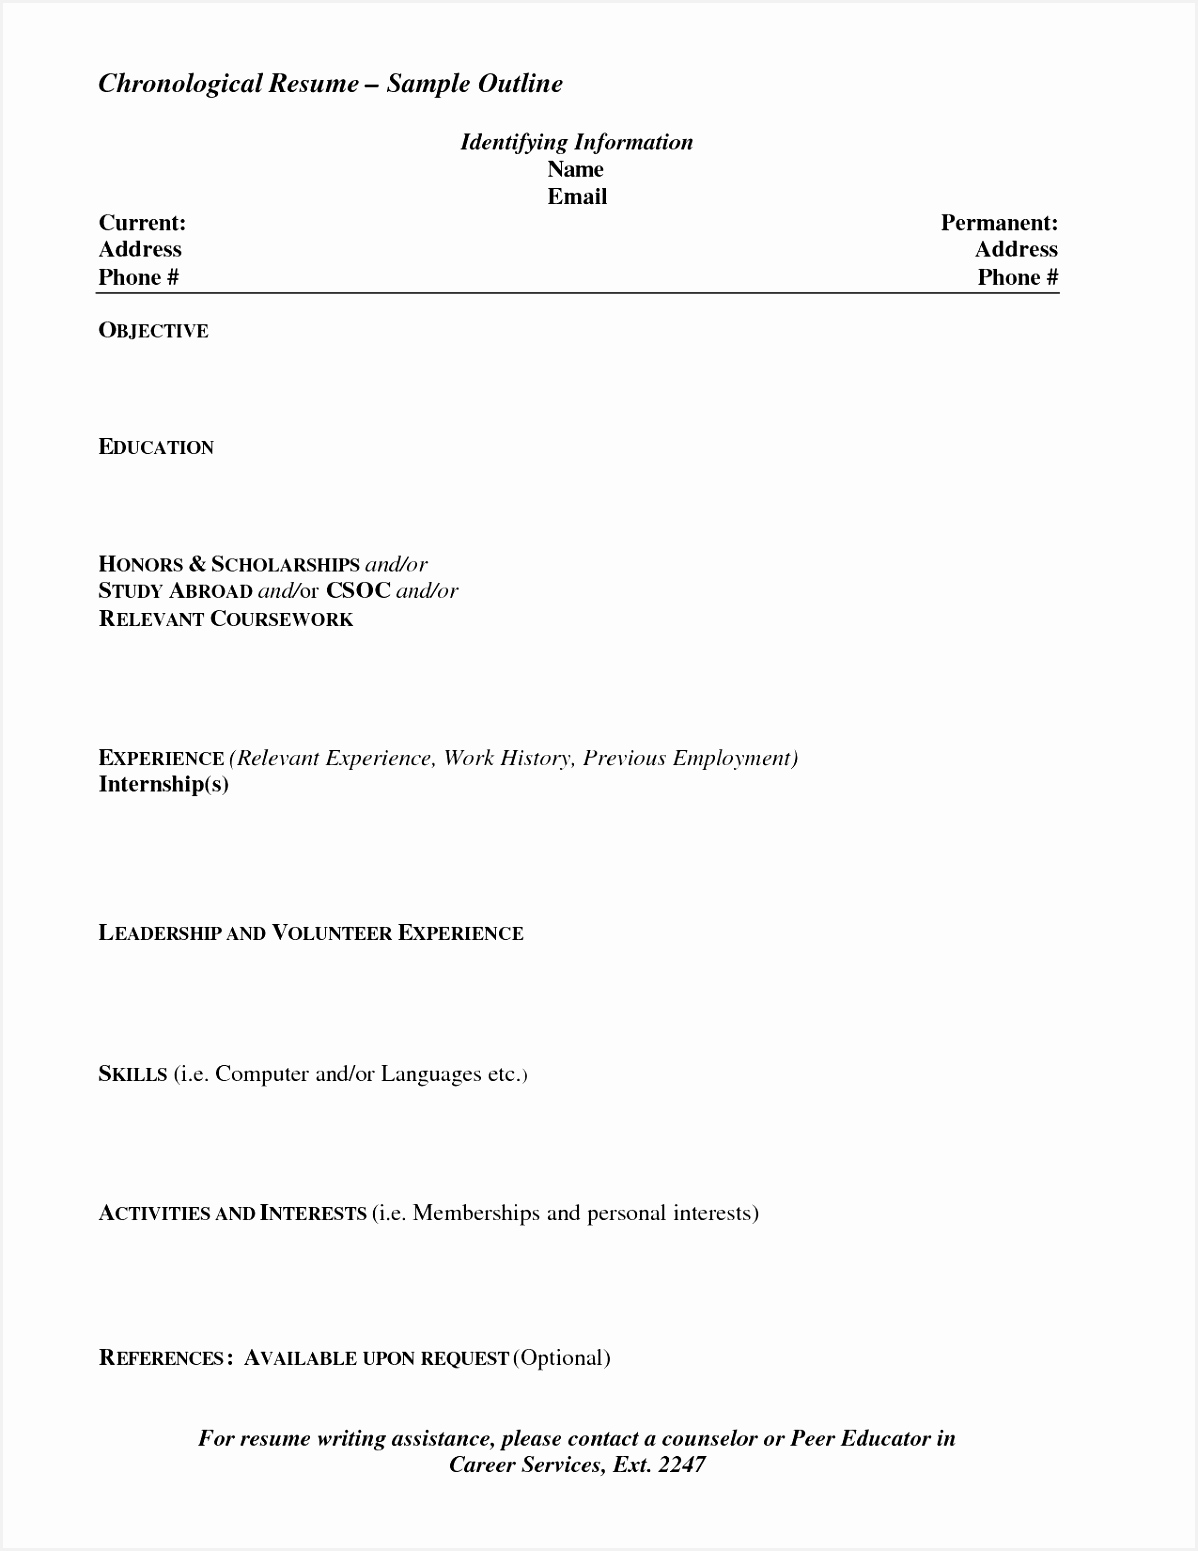 Resume Samples Pdf Downloads New Invoice Pdf 2018 Resume Examples Best 0d Free Template Downloads 15511198dRbYc